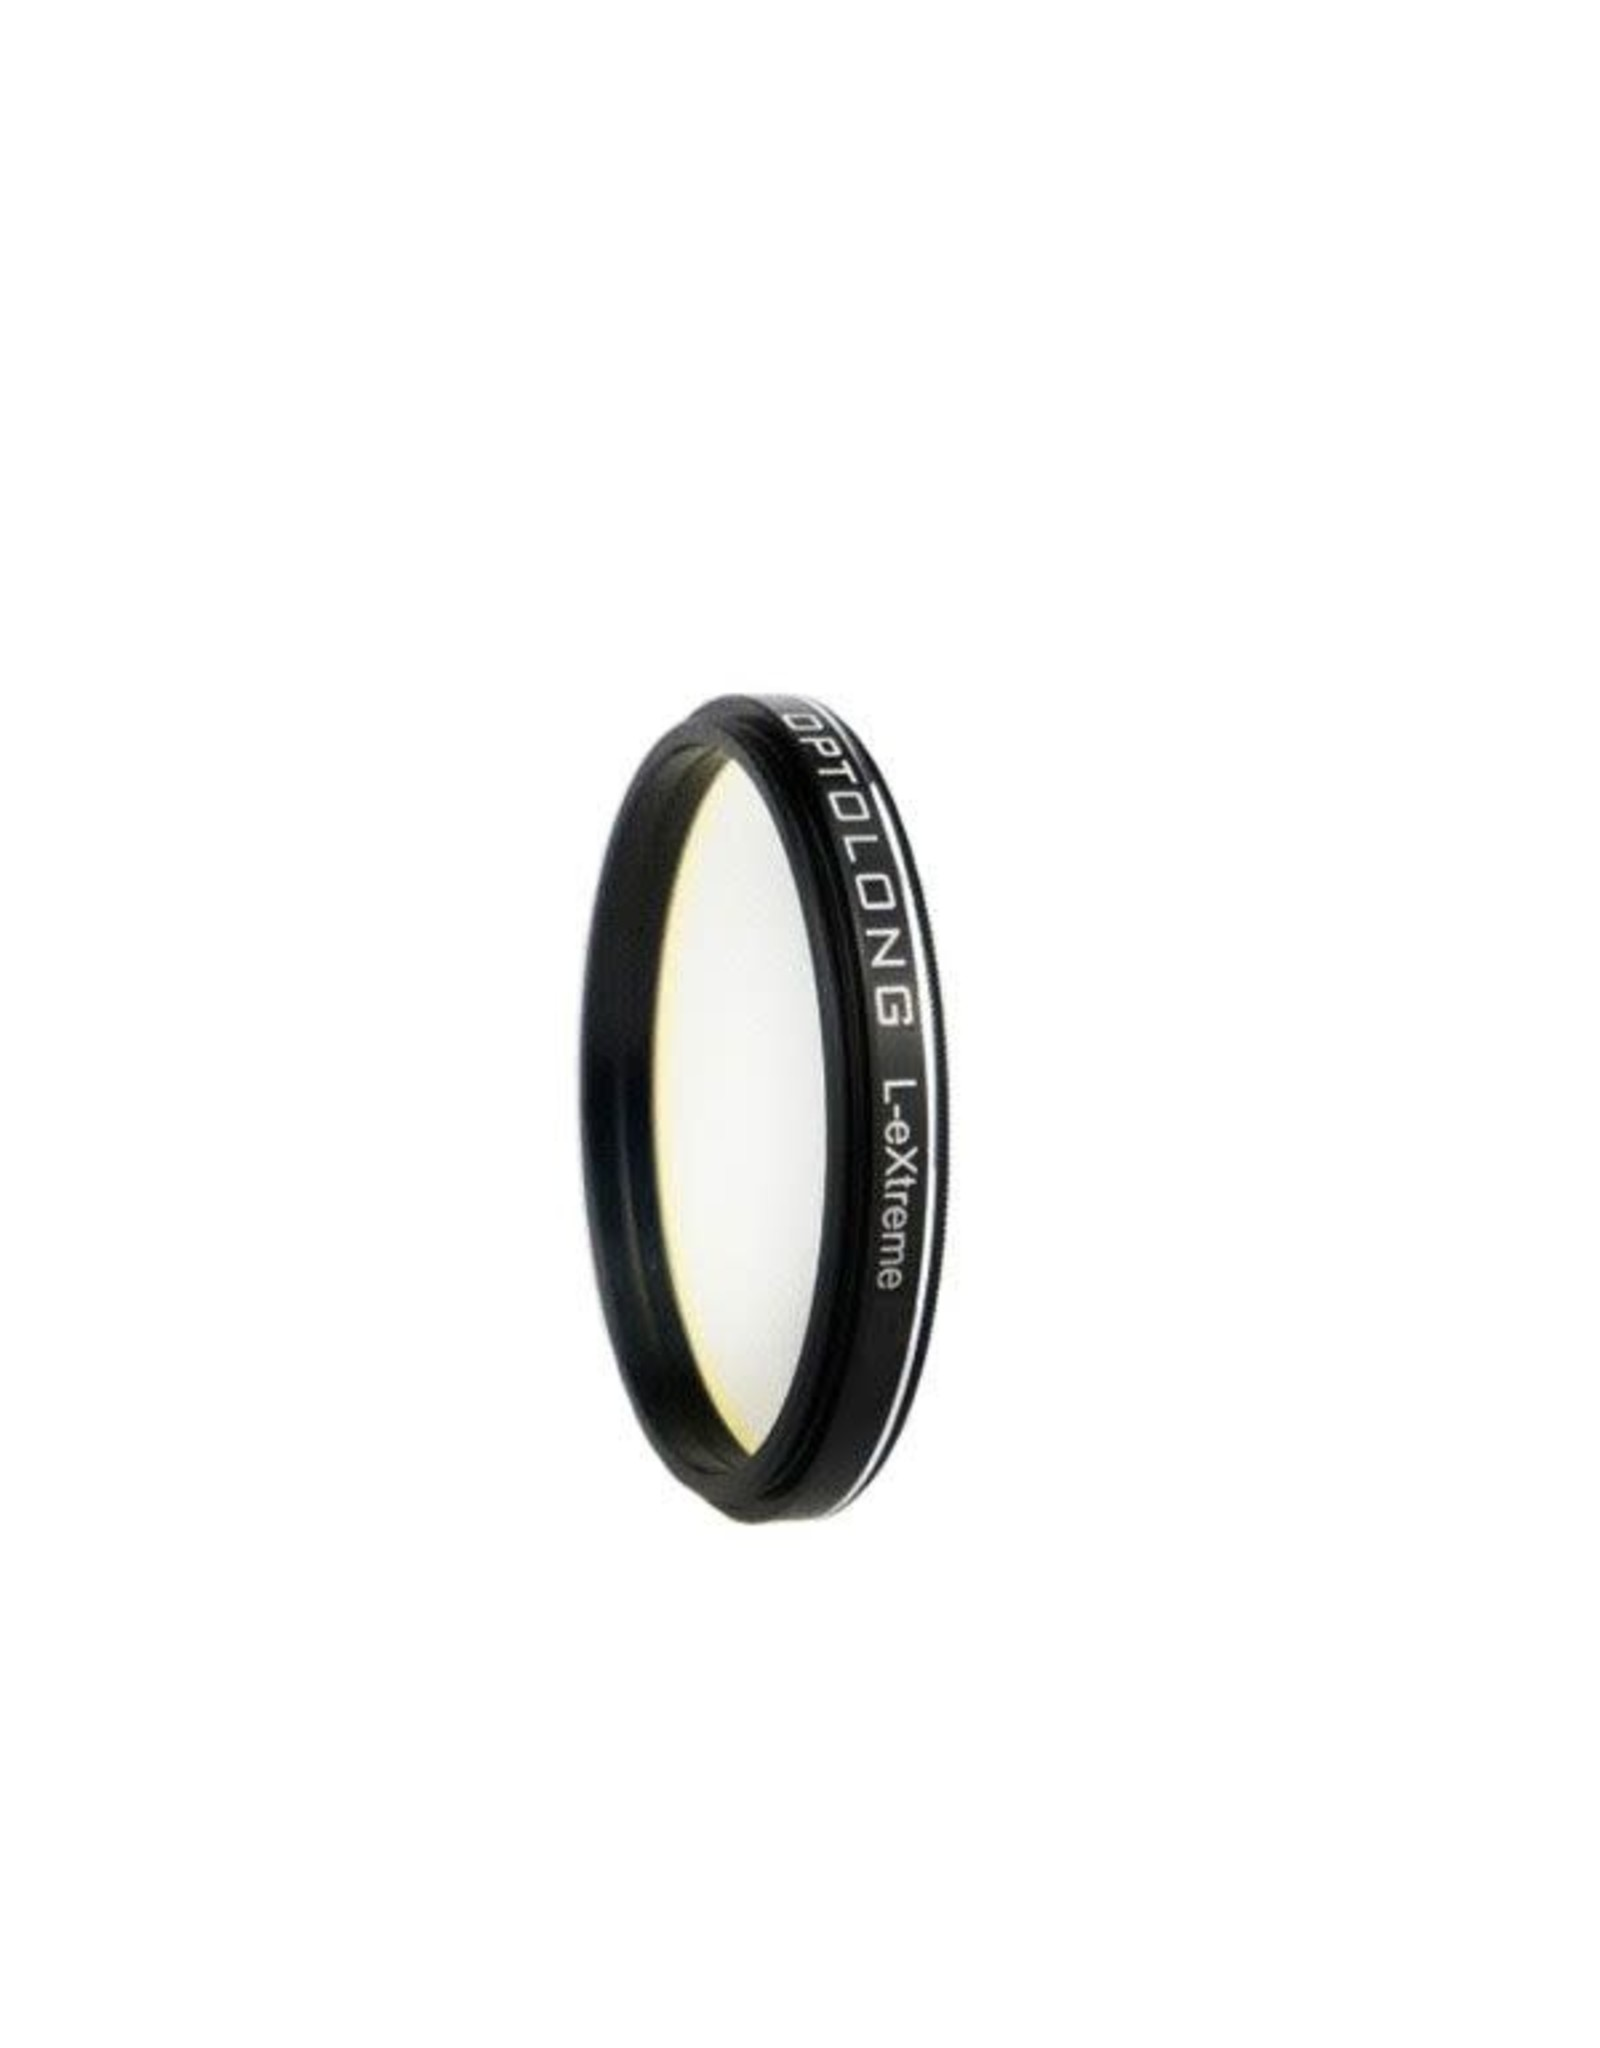 "Optolong Optolong 2"" L-eXtreme Dual Band 7nm HA/OIII Filter - LXT-200"